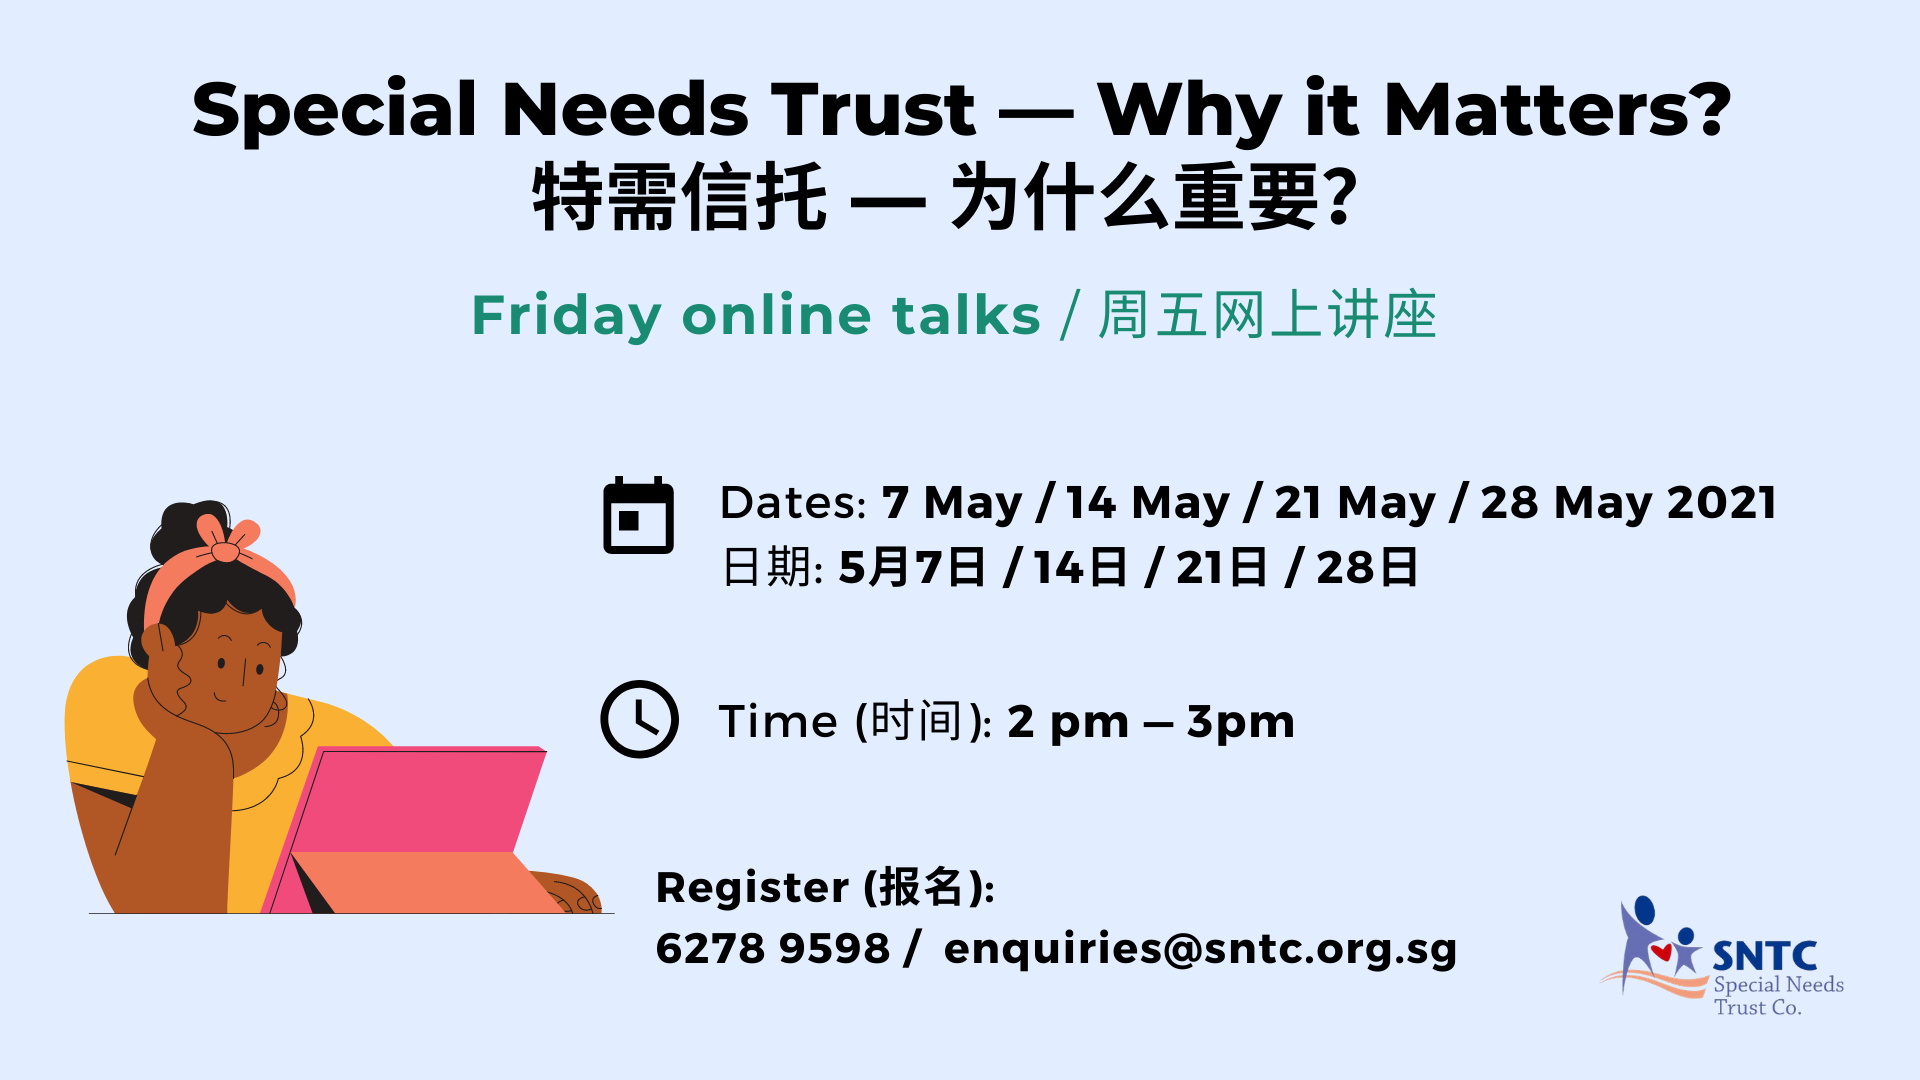 Weekly Online Talks: Special Needs Trust – Why It Matters? (特需信托 – 为什么重要?) - 7, 14, 21 And 28 May